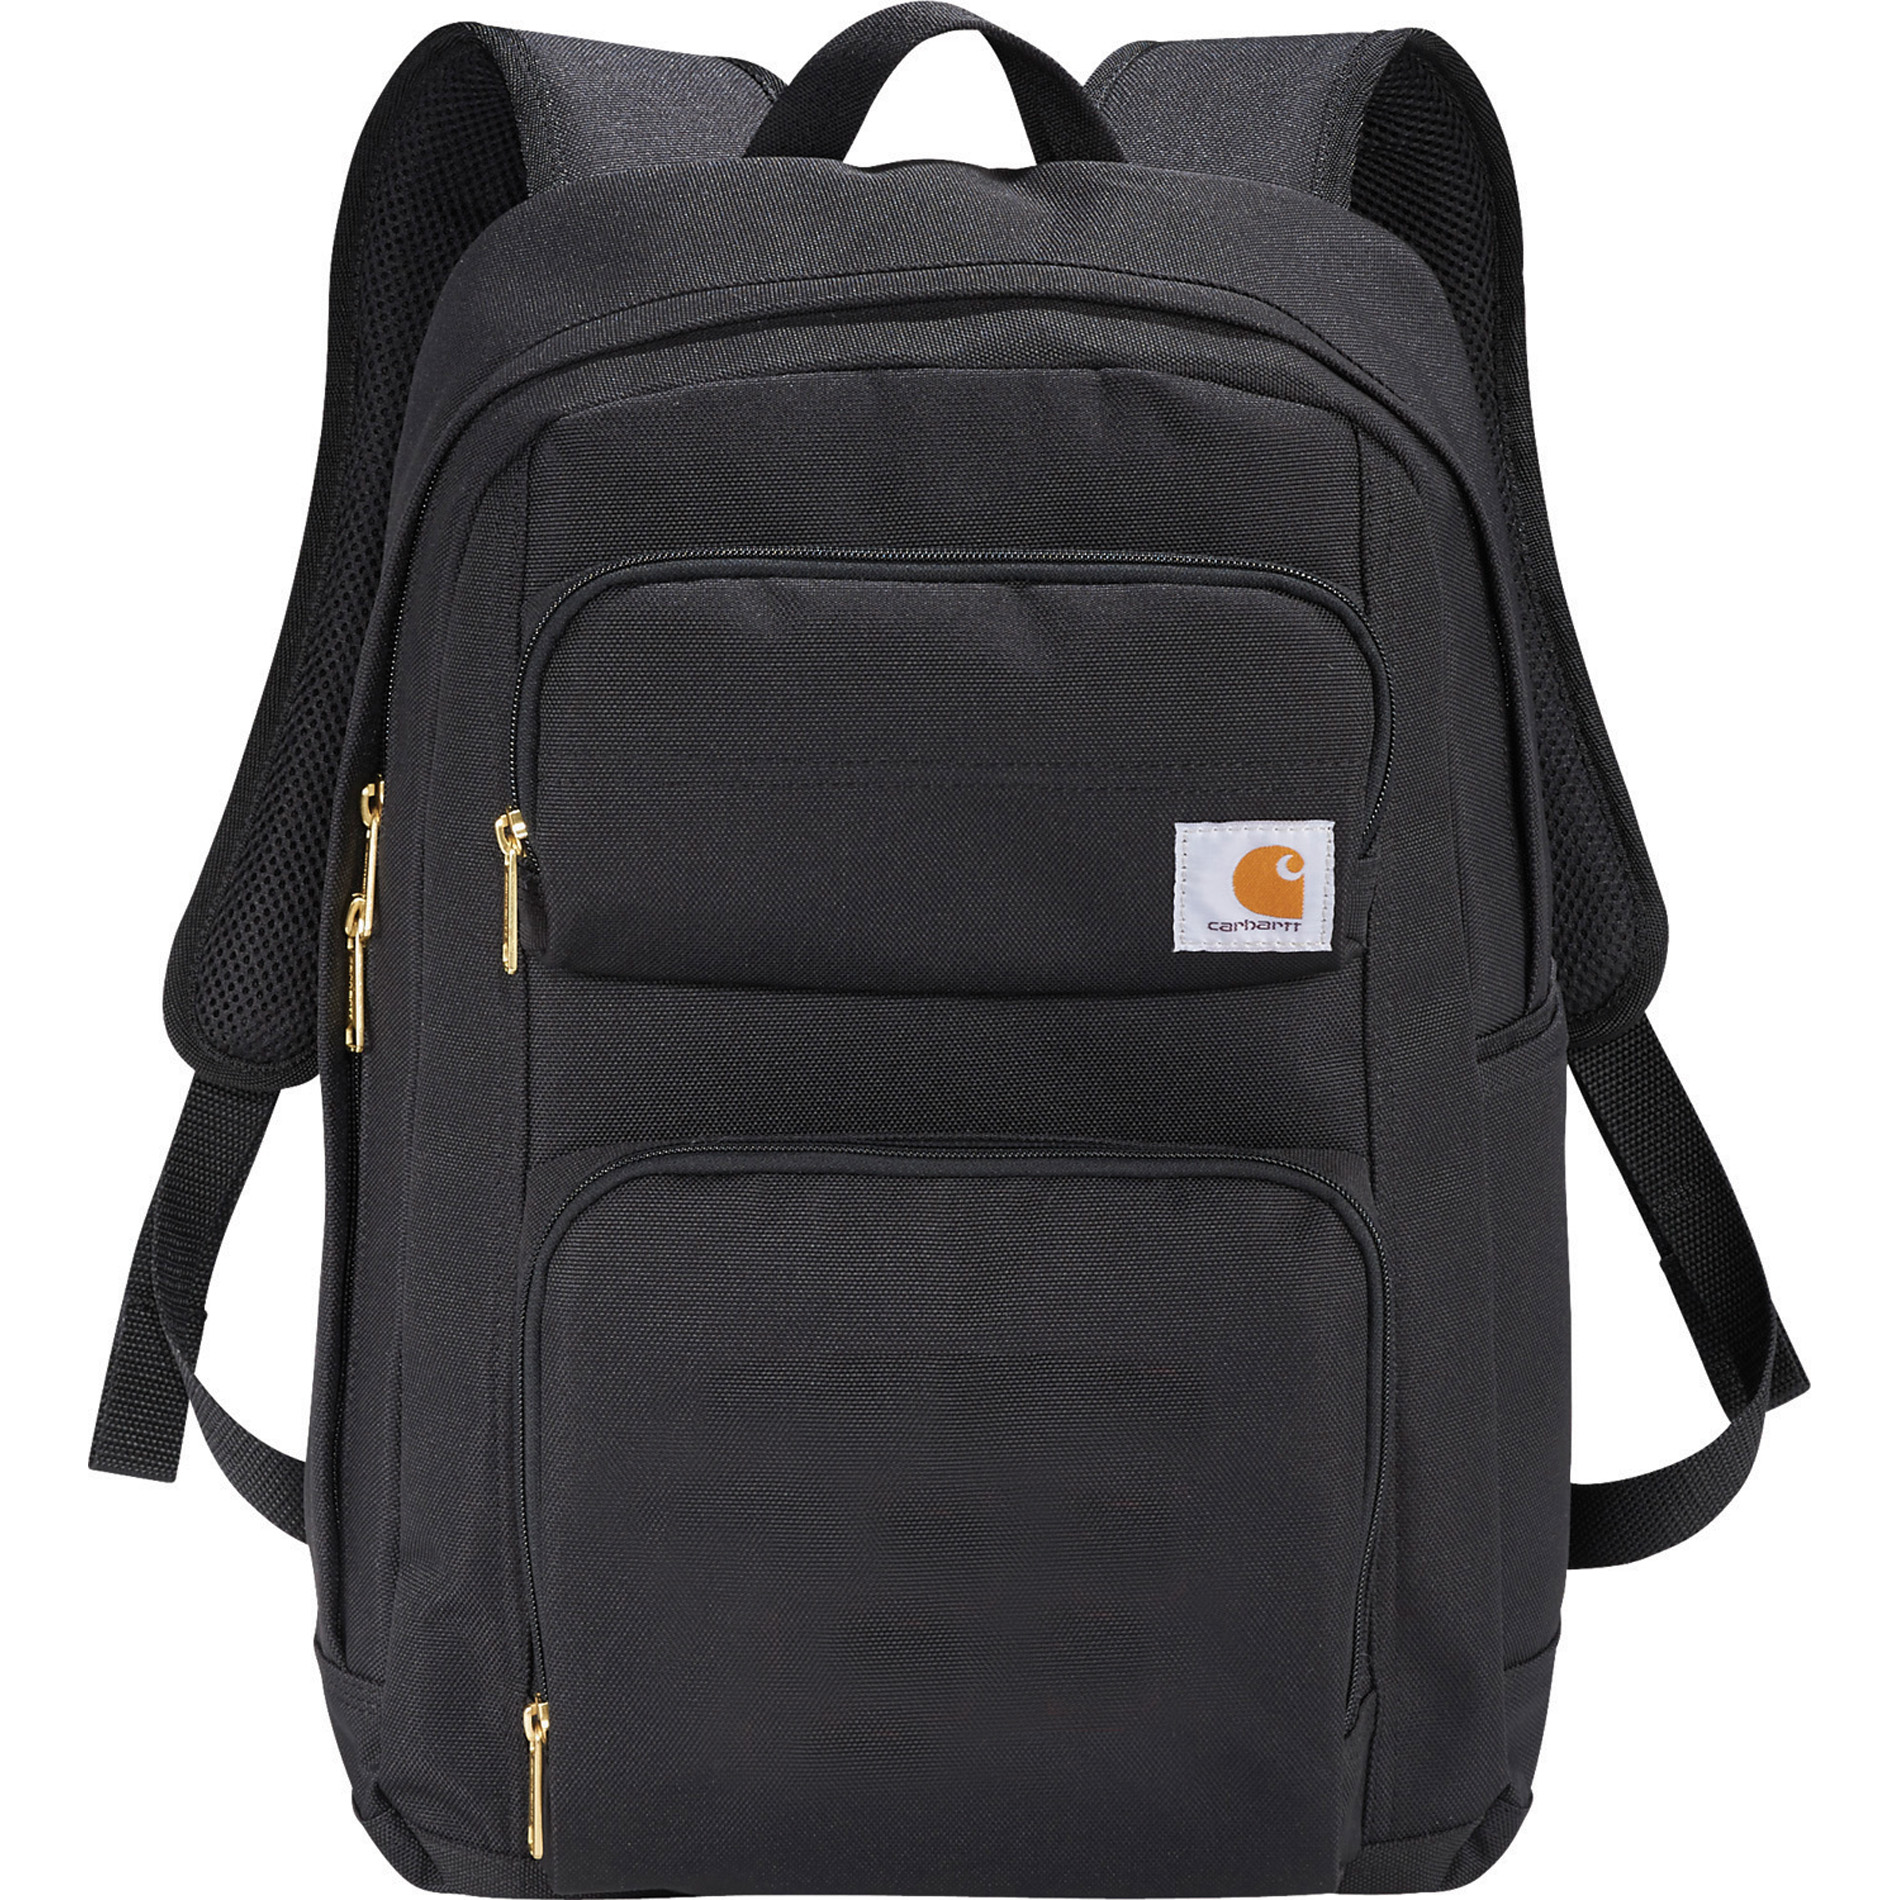 Carhartt 1889-40 - Signature Standard 15 Computer Backpack